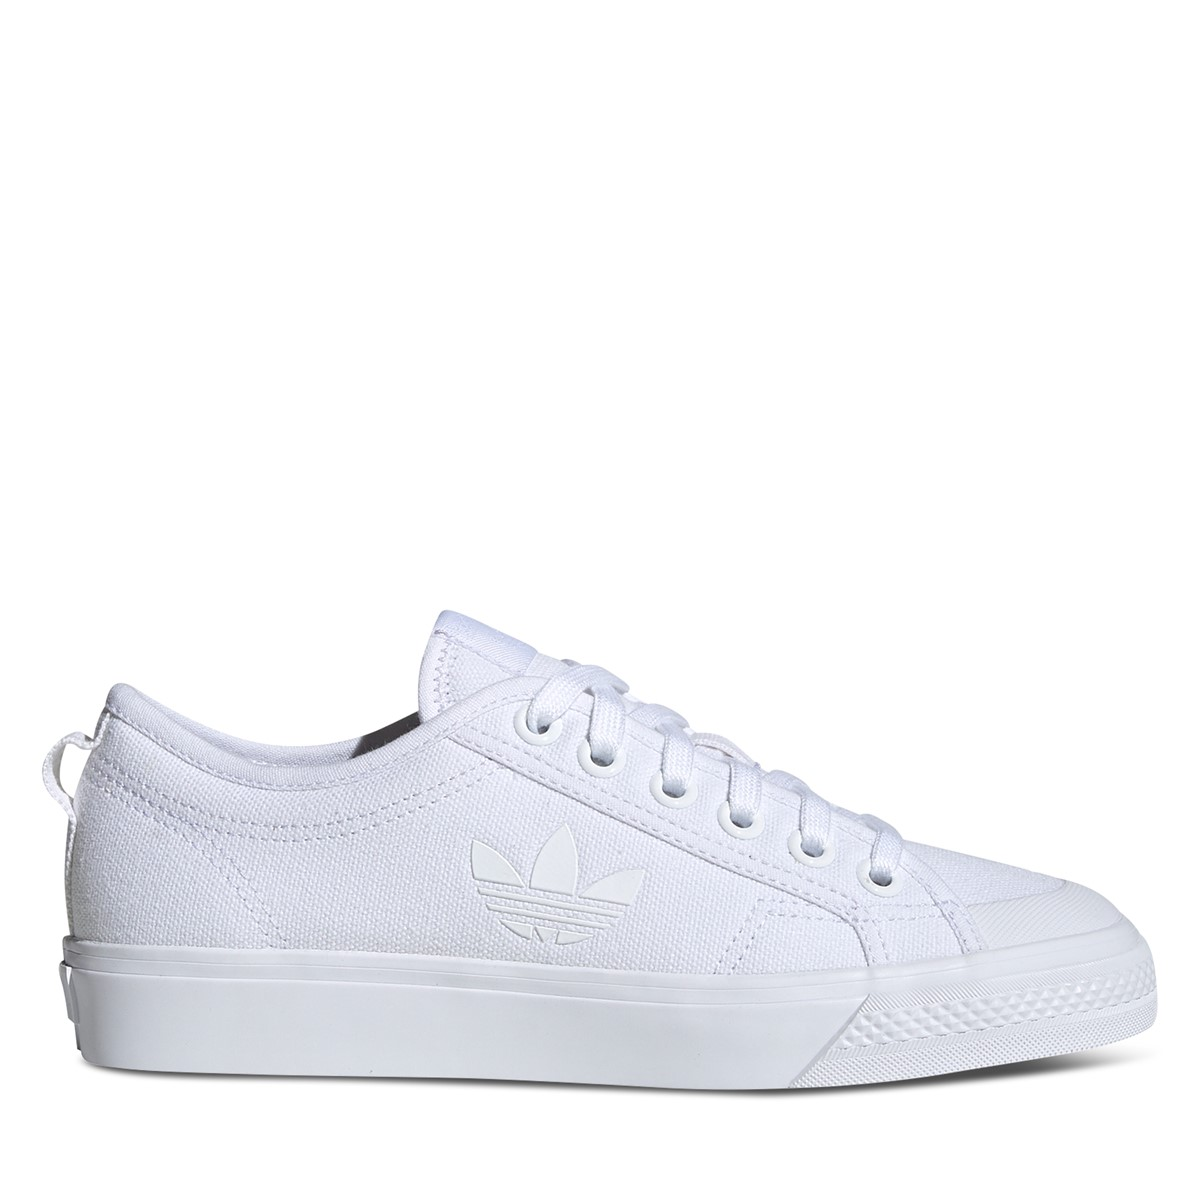 Nizza Trefoil Sneakers in White